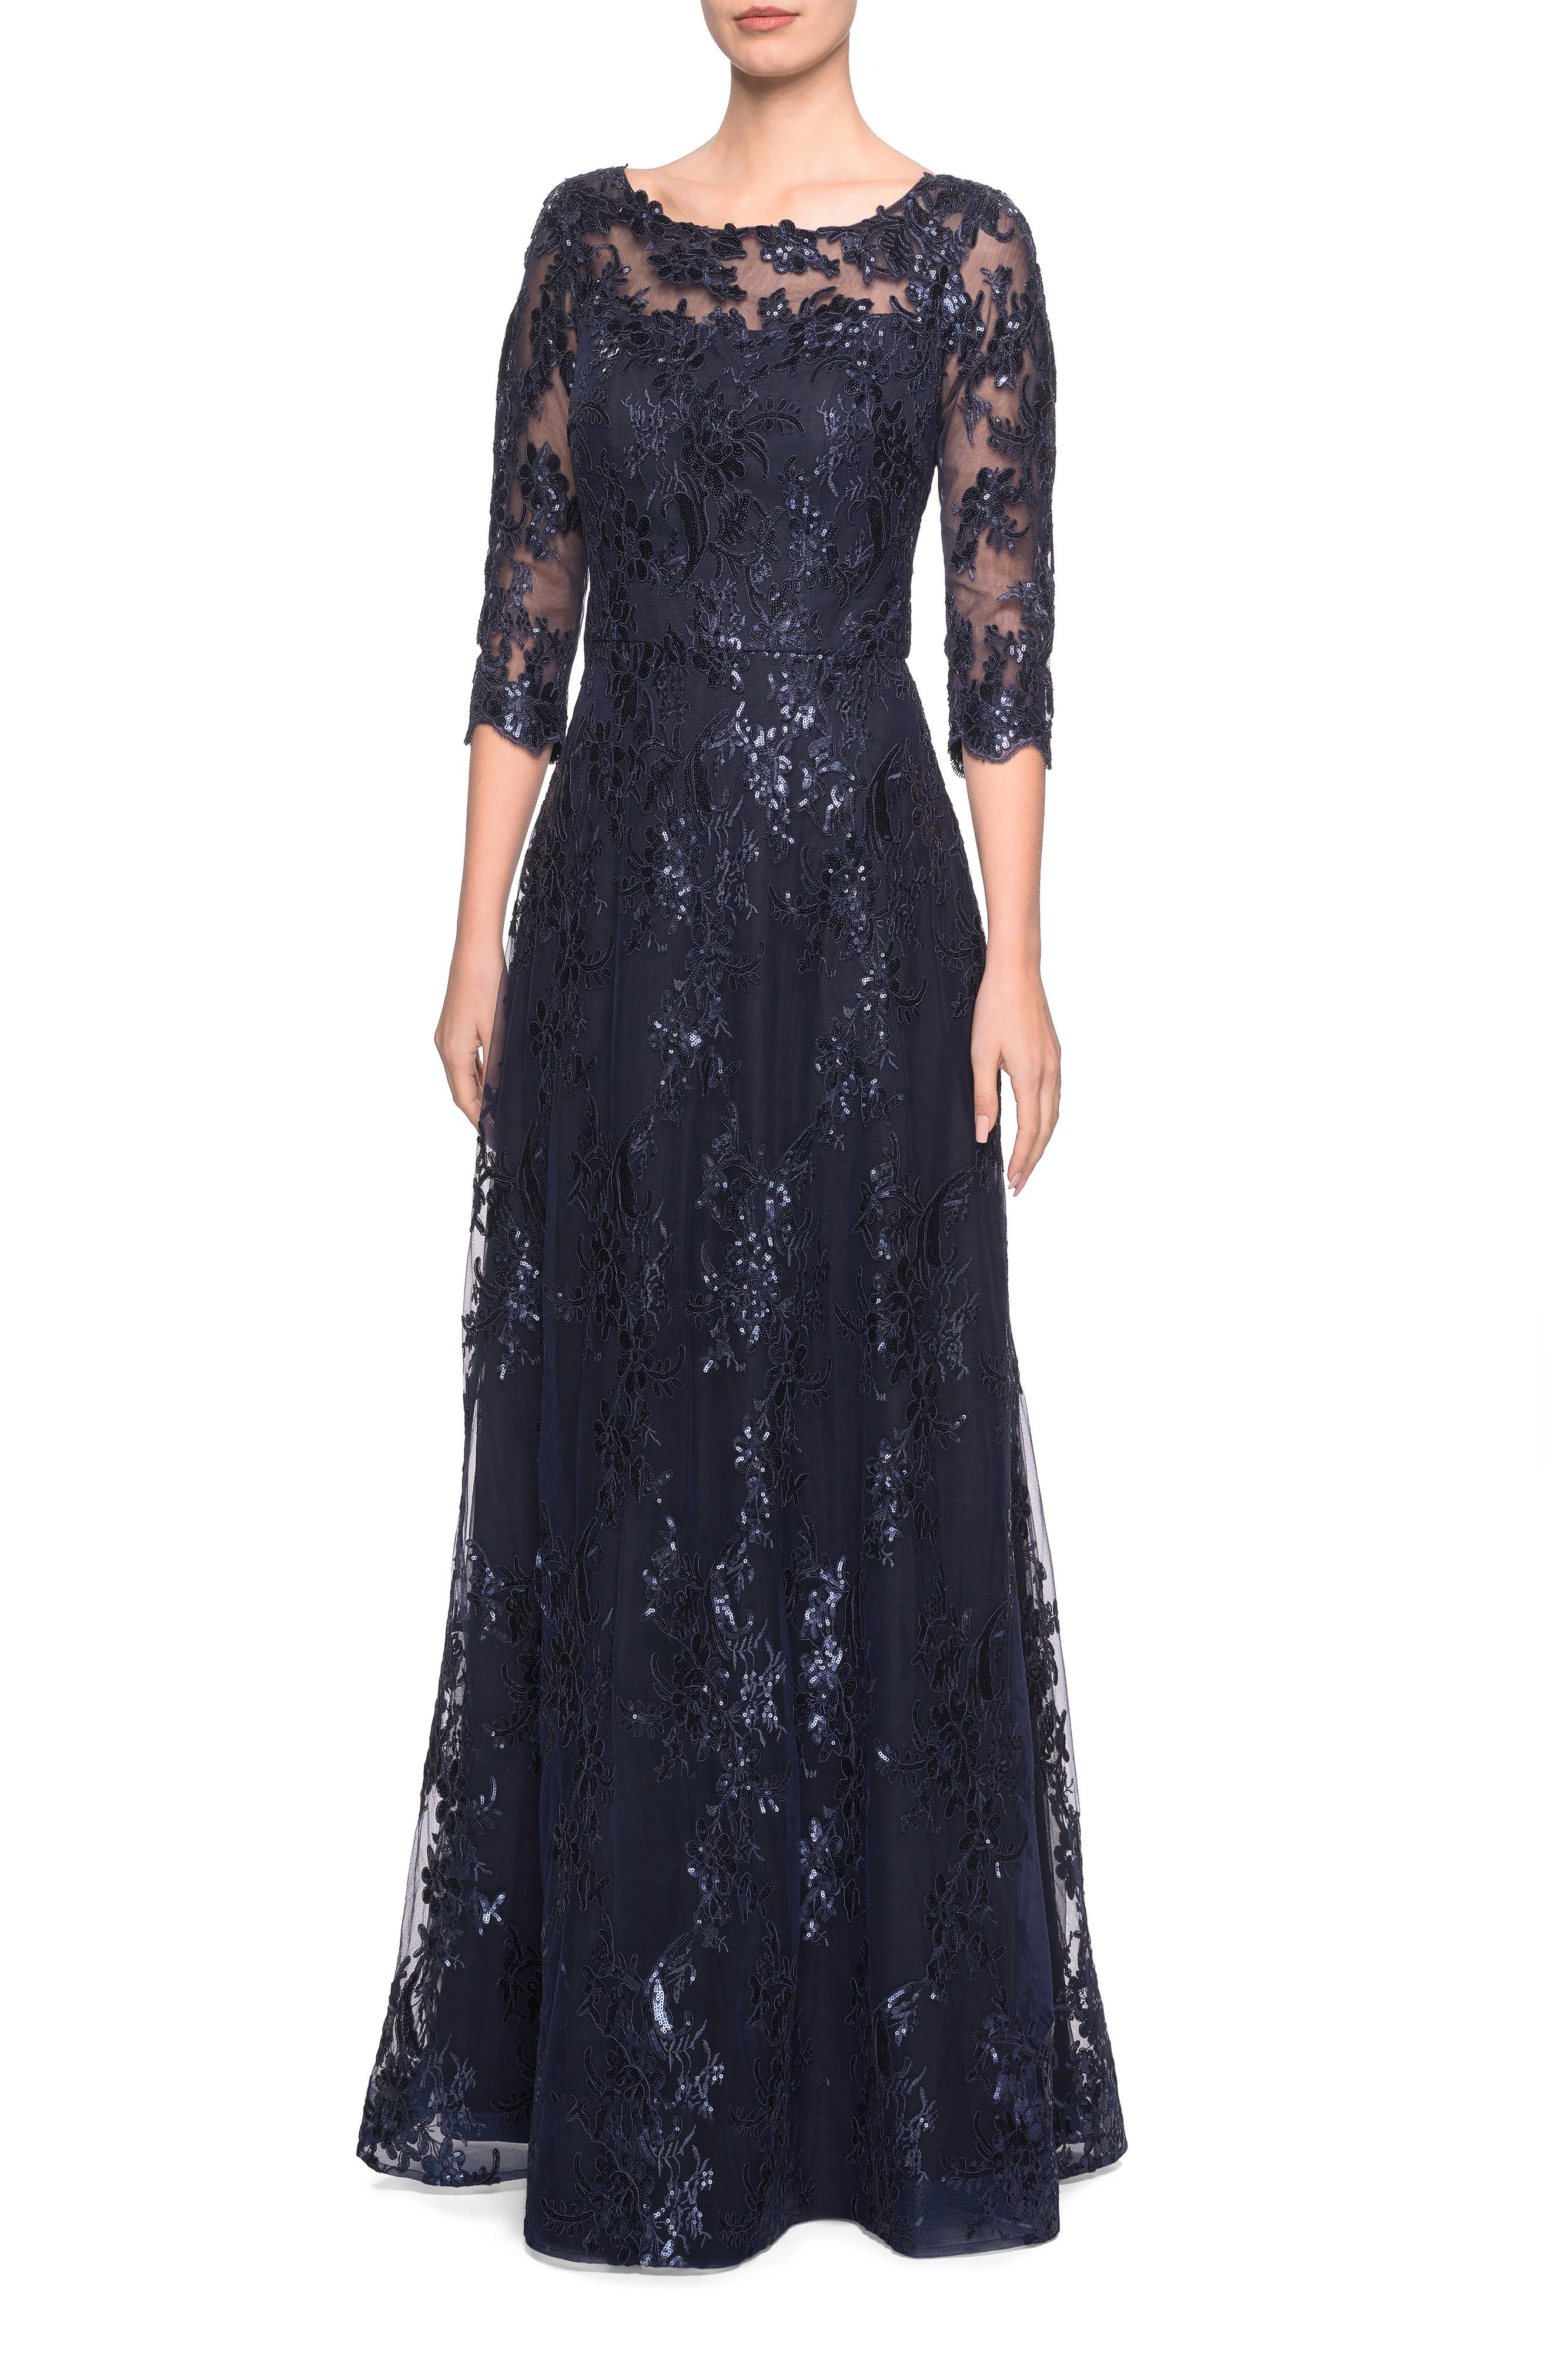 La Femme Shimmer Sequin Lace Evening Dress, Blue